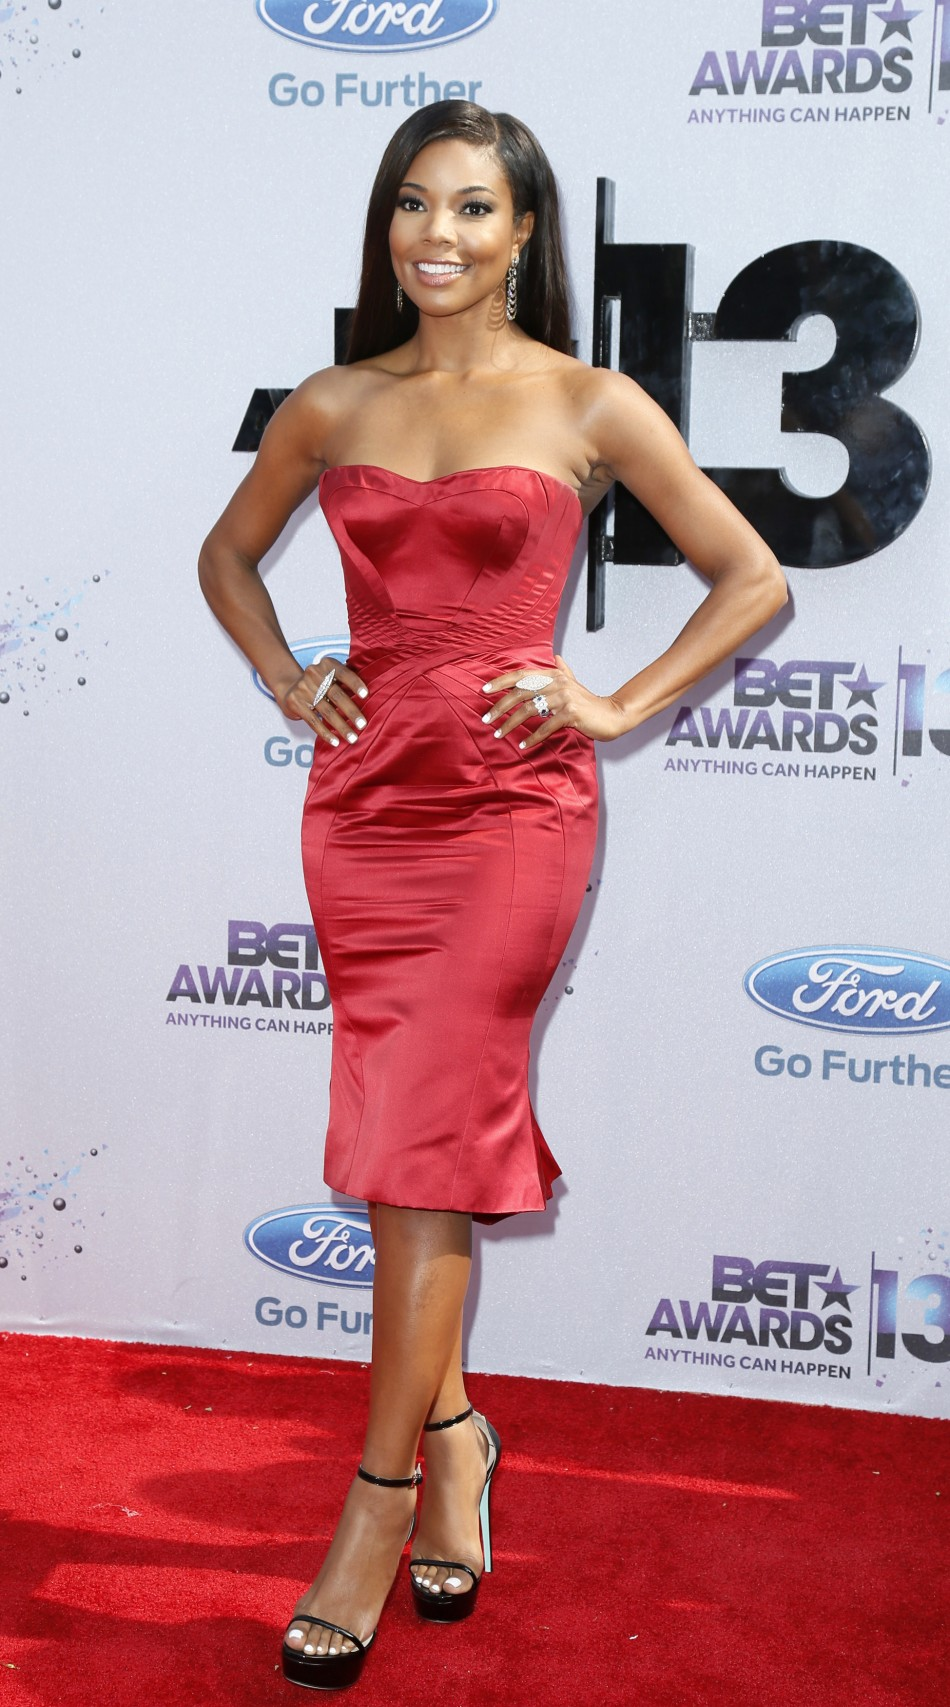 Actress Gabrielle Union arrives at the 2013 BET Awards in Los Angeles, California June 30, 2013.